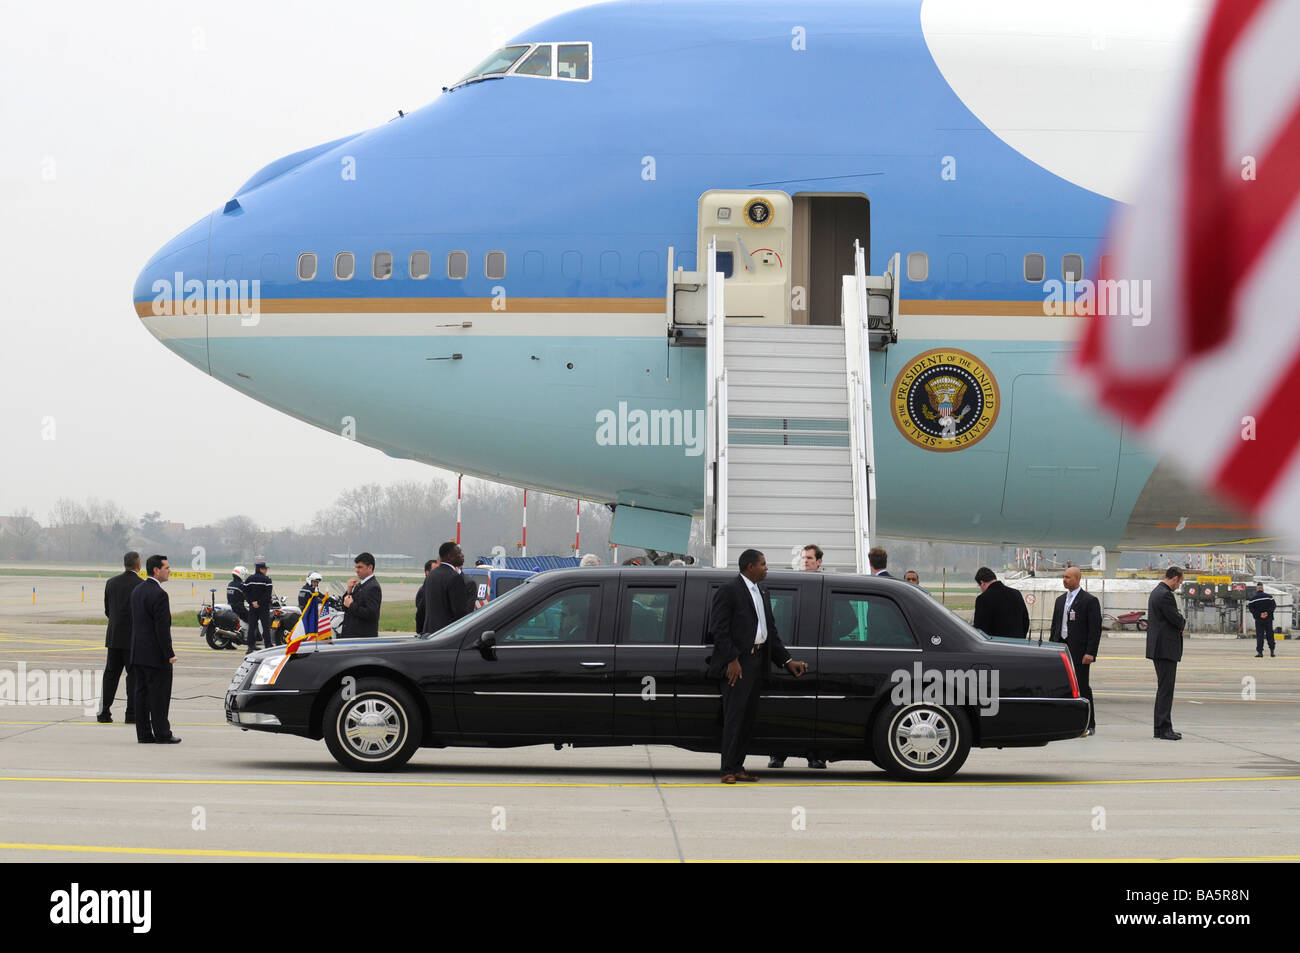 The plane of the US president, Air Force One. - Stock Image